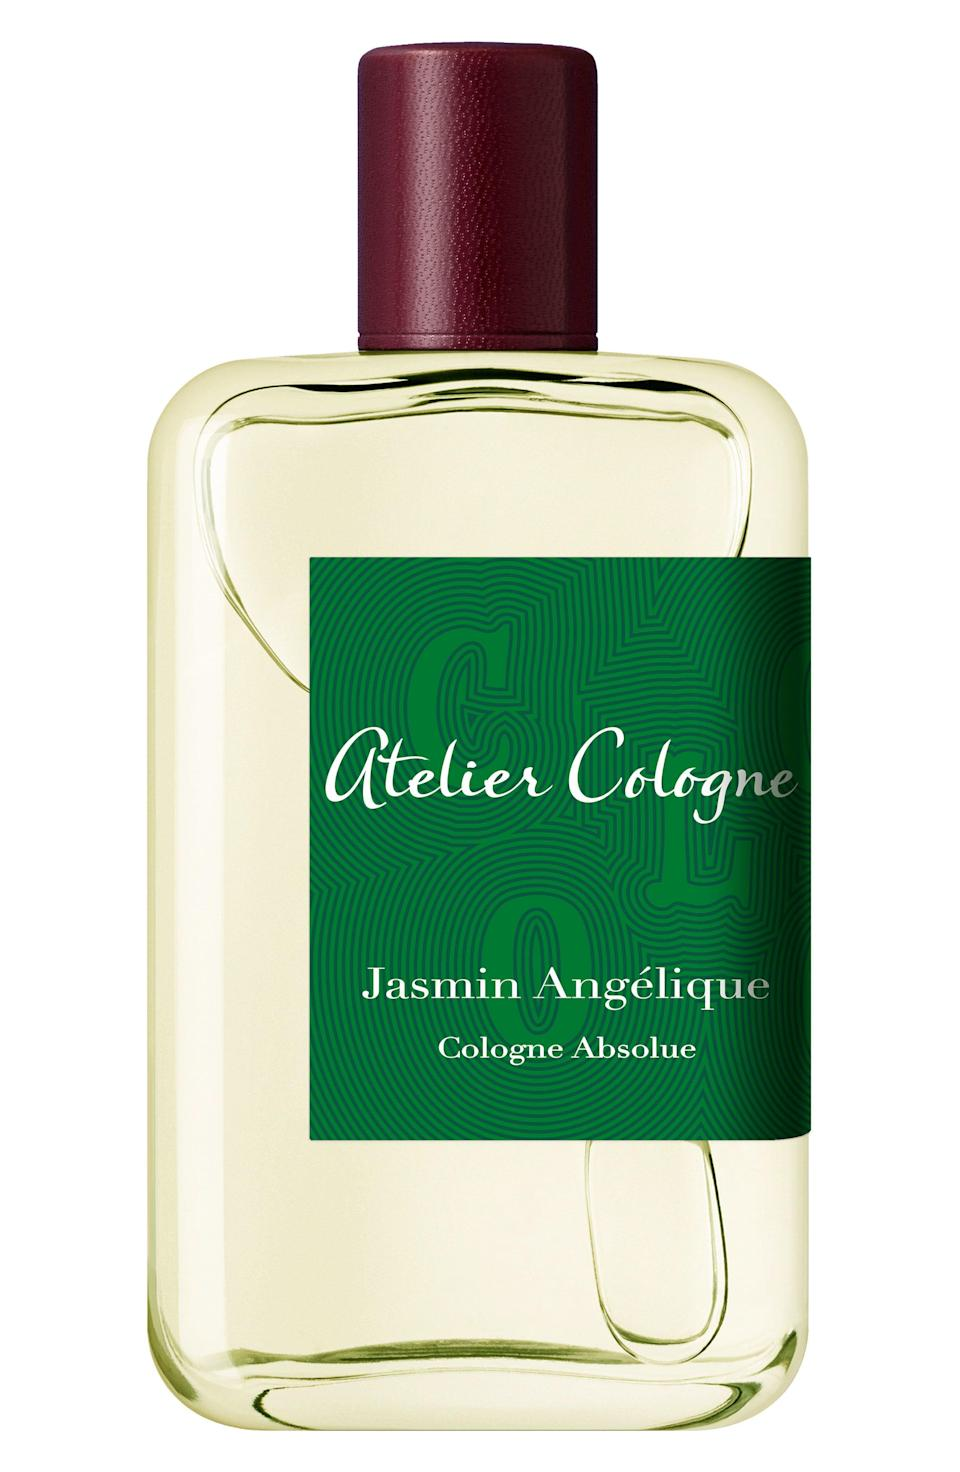 "<p><strong>ATELIER COLOGNE</strong></p><p>nordstrom.com</p><p><a href=""https://go.redirectingat.com?id=74968X1596630&url=https%3A%2F%2Fshop.nordstrom.com%2Fs%2Fatelier-cologne-jasmin-angelique-cologne-absolue%2F4704411&sref=https%3A%2F%2Fwww.bestproducts.com%2Fpromo-coupon-codes%2Fg34775483%2Fnordstrom-black-friday-cyber-monday-deals-2020%2F"" rel=""nofollow noopener"" target=""_blank"" data-ylk=""slk:Shop Now"" class=""link rapid-noclick-resp"">Shop Now</a></p><p><strong>Price: <del>$140</del> $84 (40% off) </strong></p><p>Atelier Cologne has some of the best scents out there, and this jasmine one will get you so many compliments. </p>"